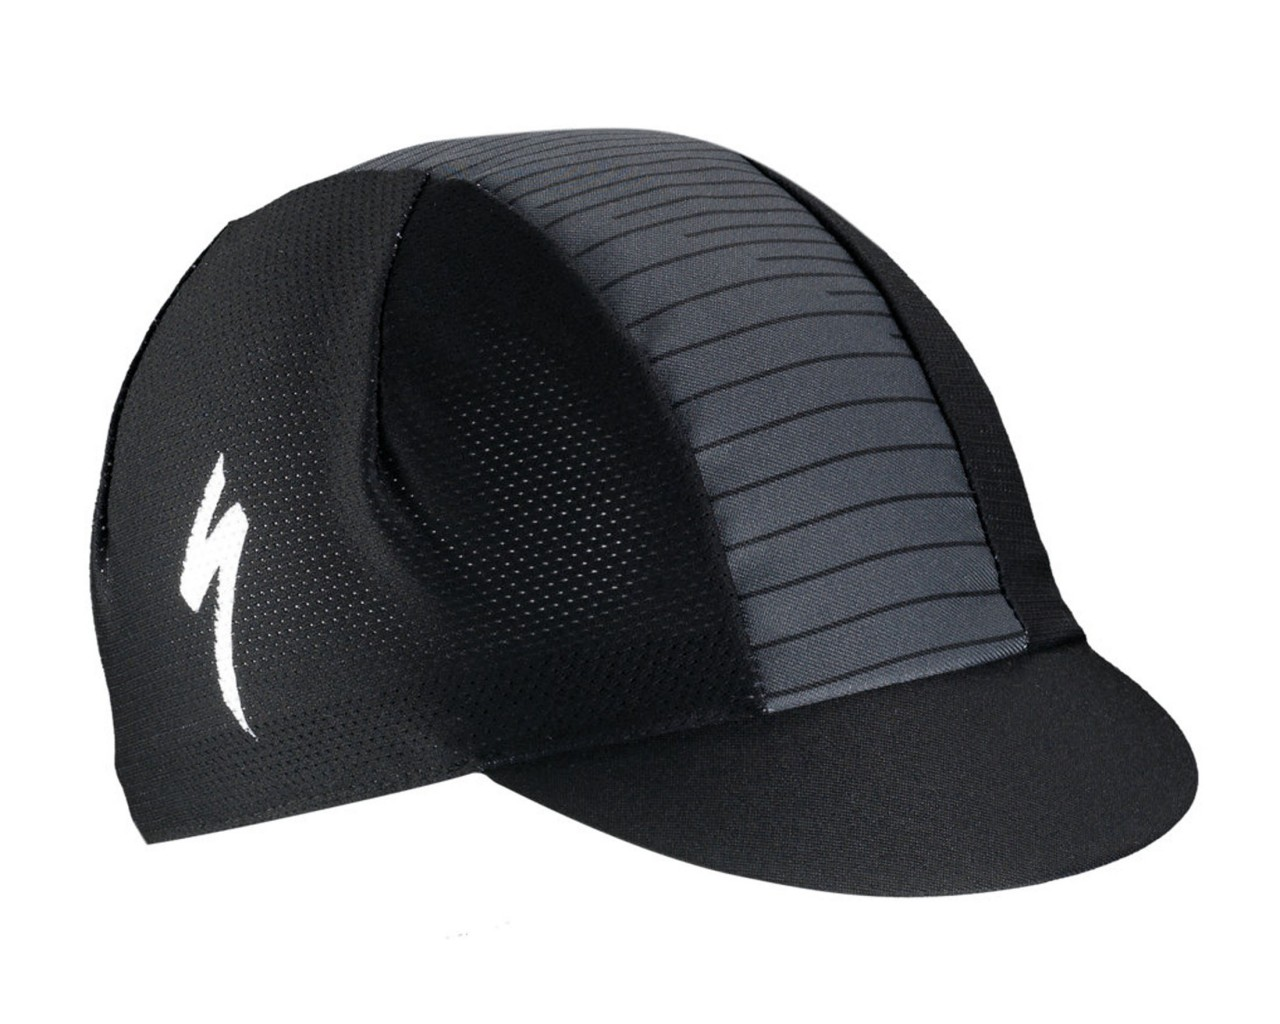 Specialized Cycling Cap Light Terrain   black-charcoal